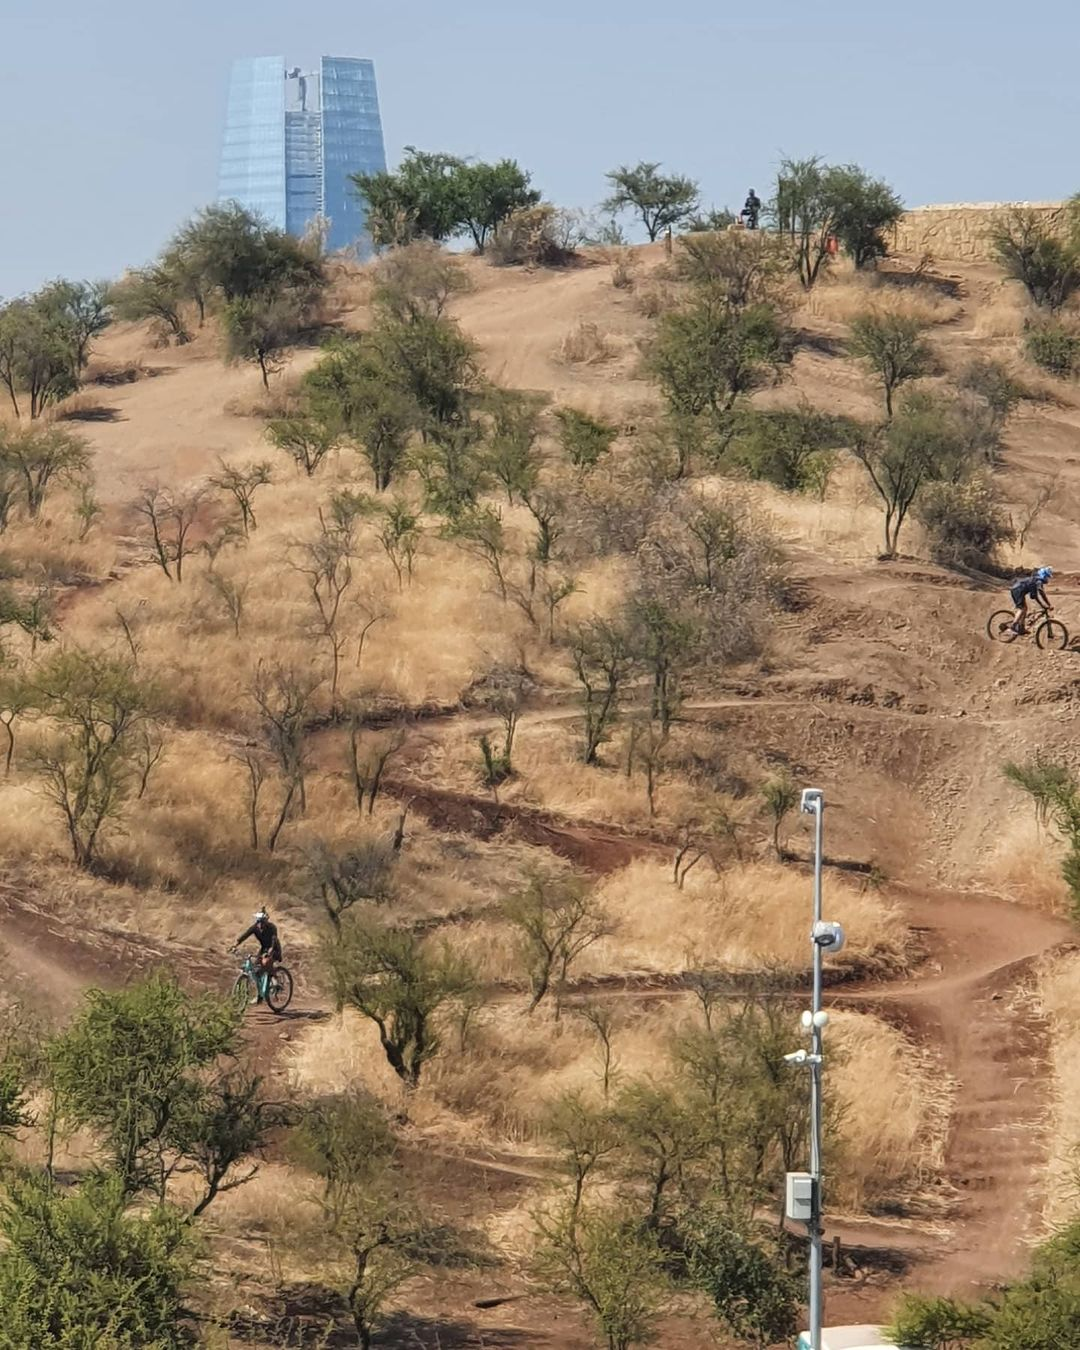 Bikers riding the off road trail in Parque Metropolitano